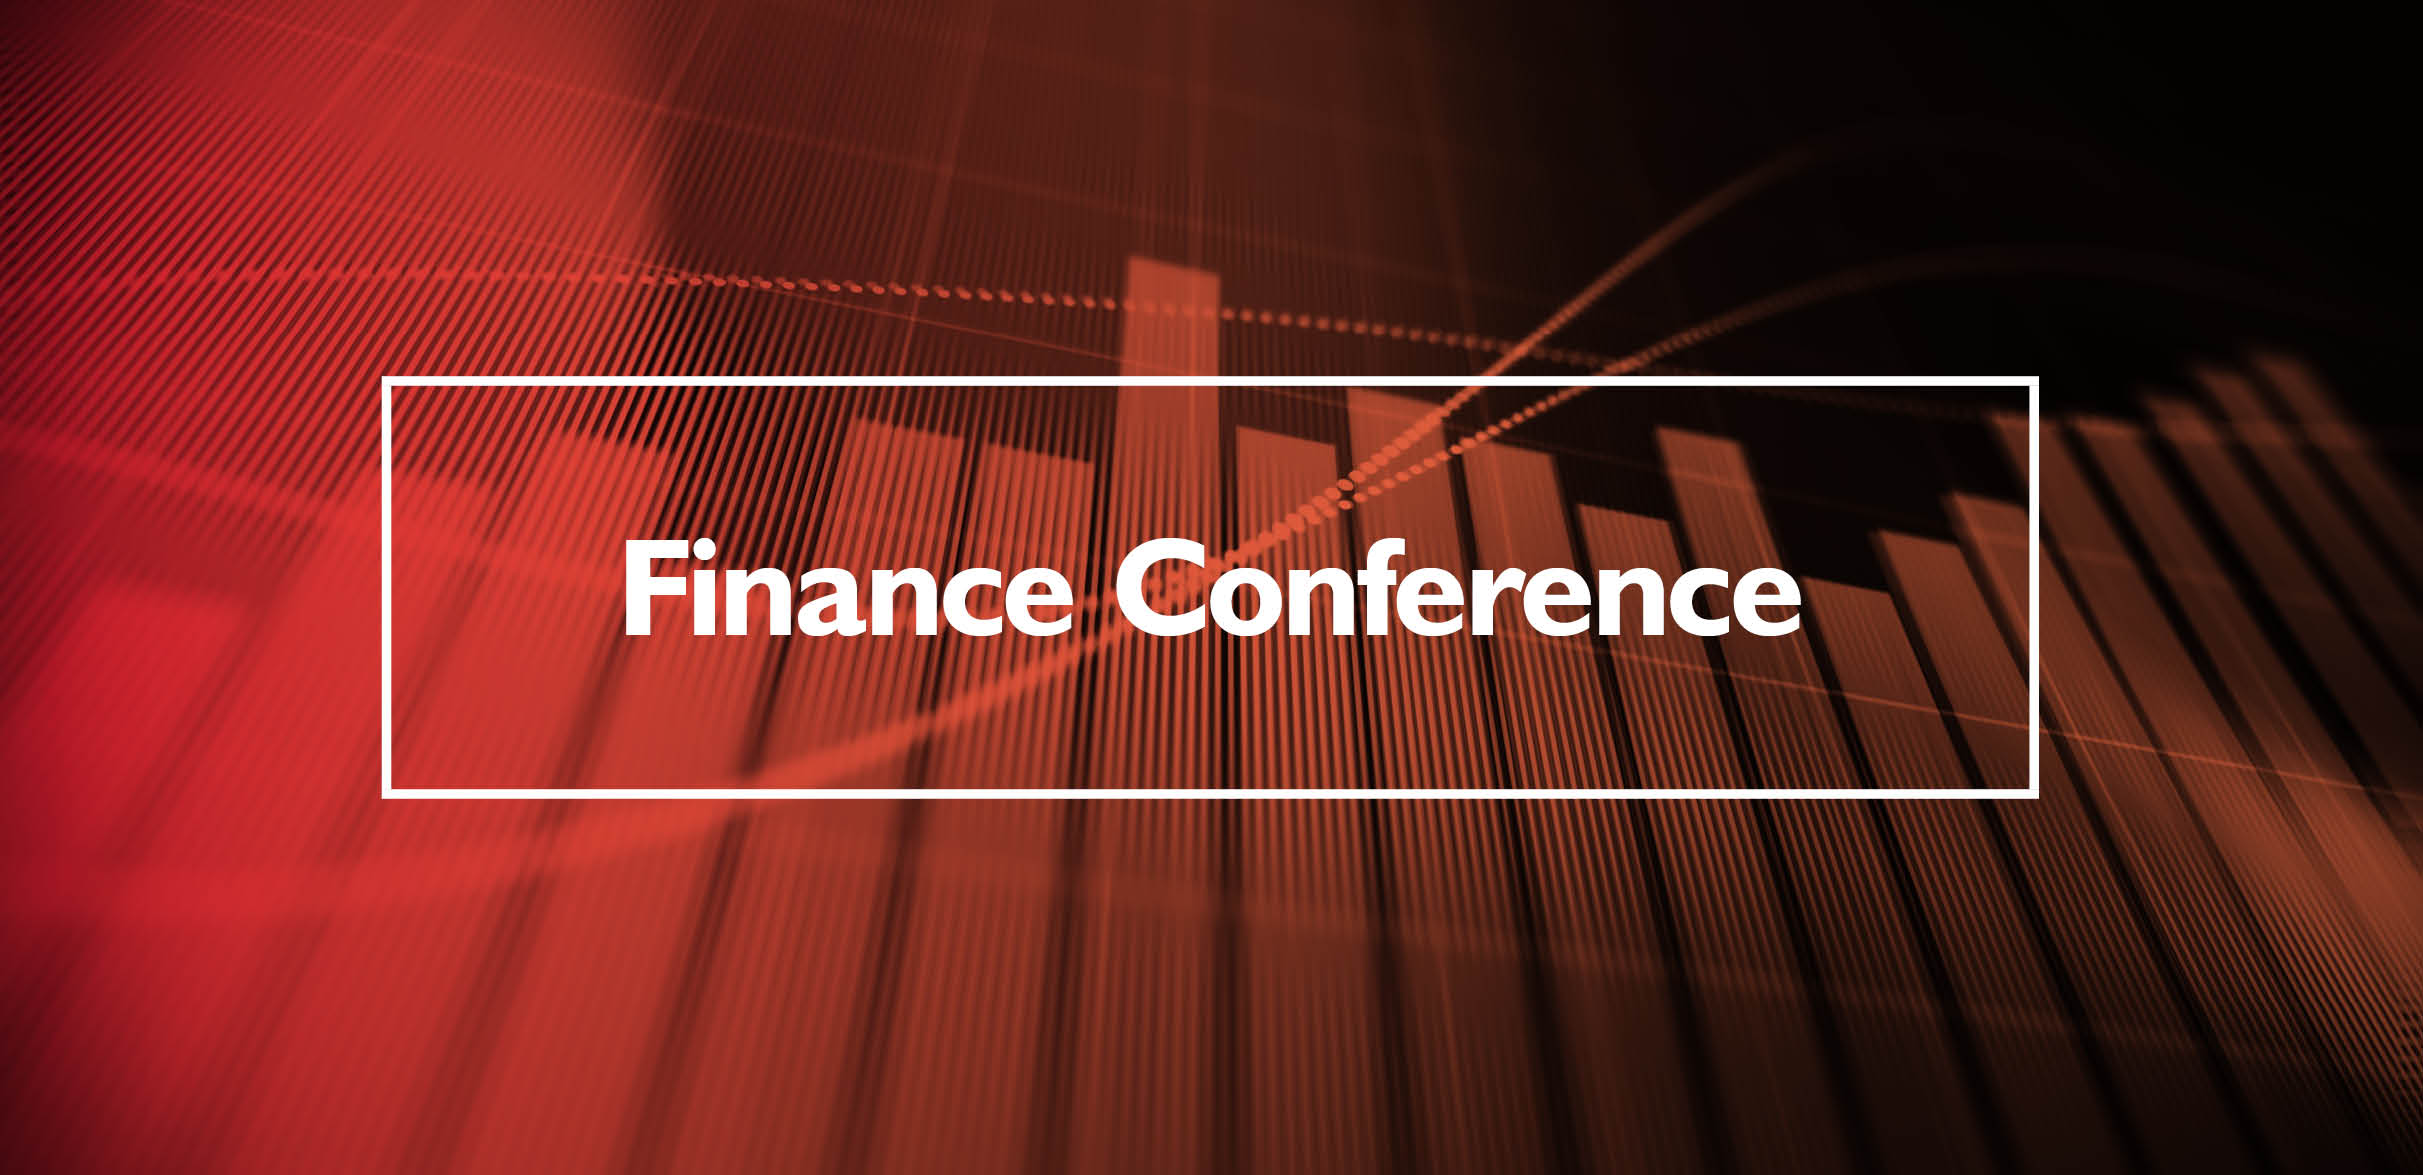 SFHA Finance Conference 2019 image